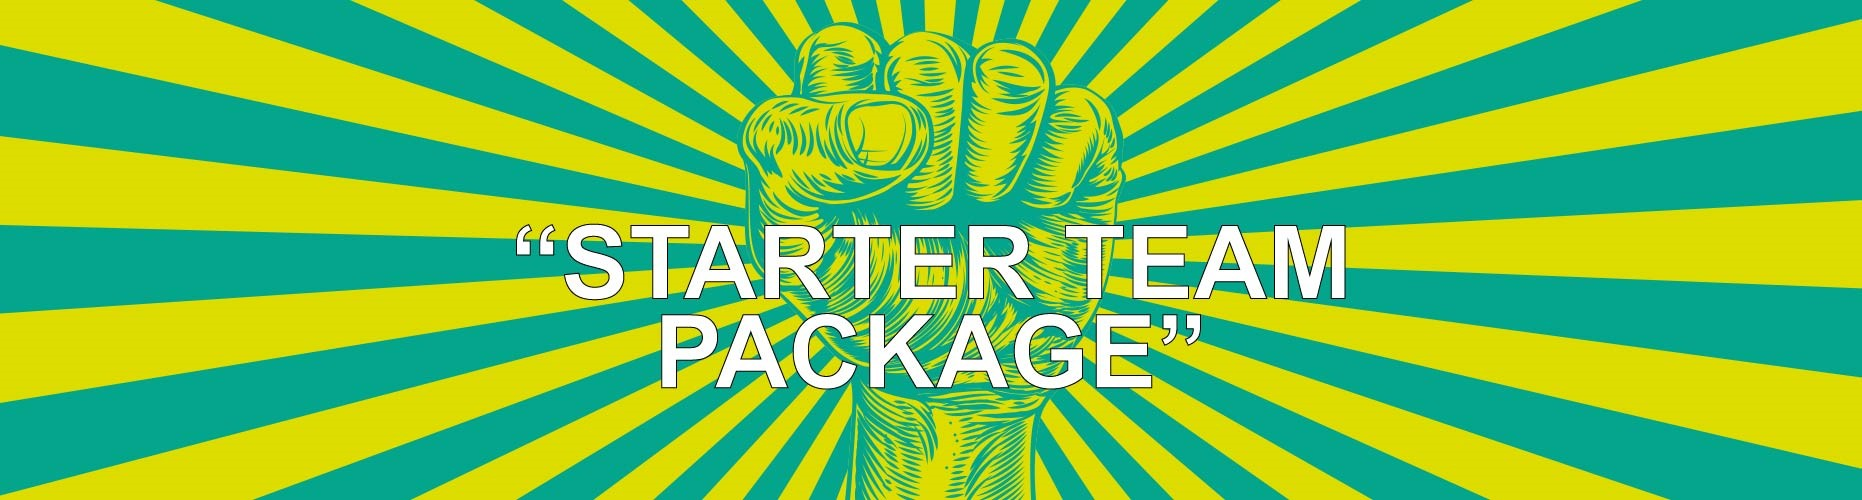 Website_starter team package